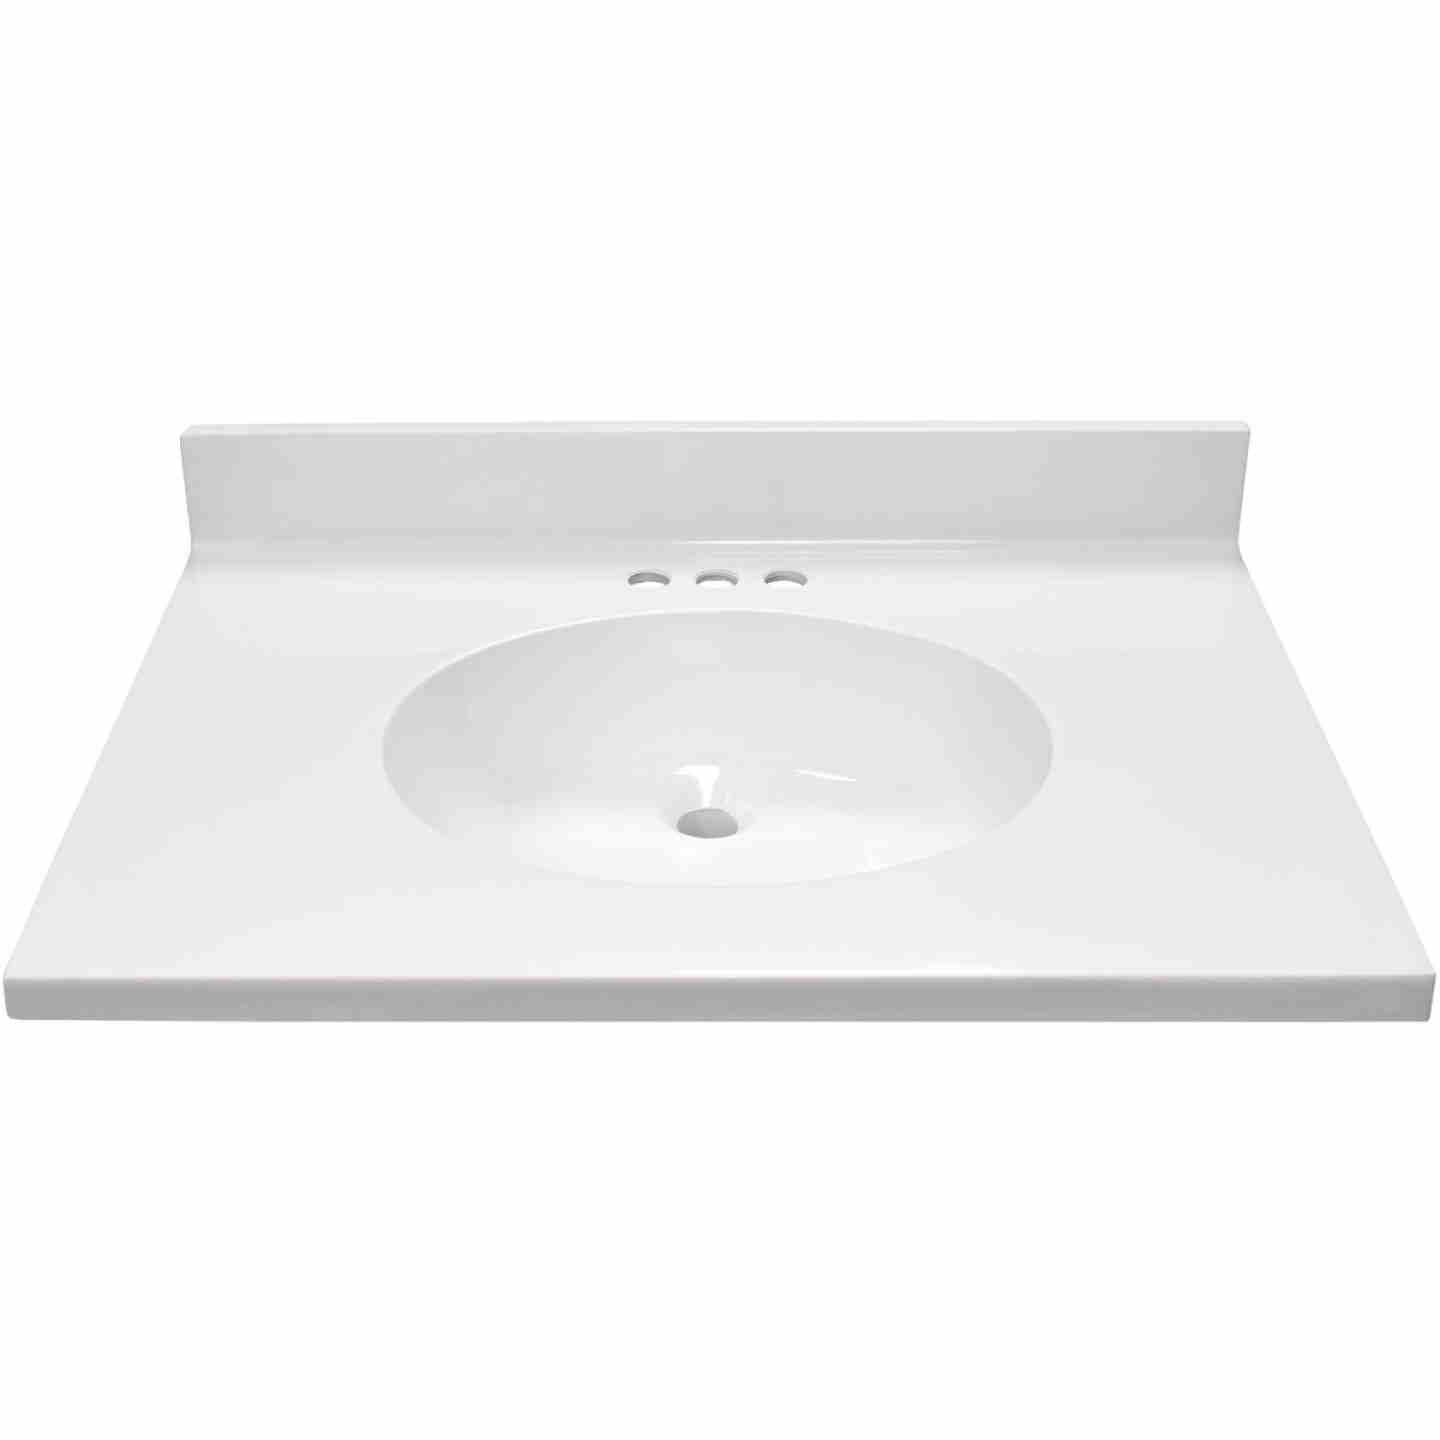 Modular Vanity Tops 31 In. W x 22 In. D Solid White Cultured Marble Flat Edge Vanity Top with Oval Bowl Image 2